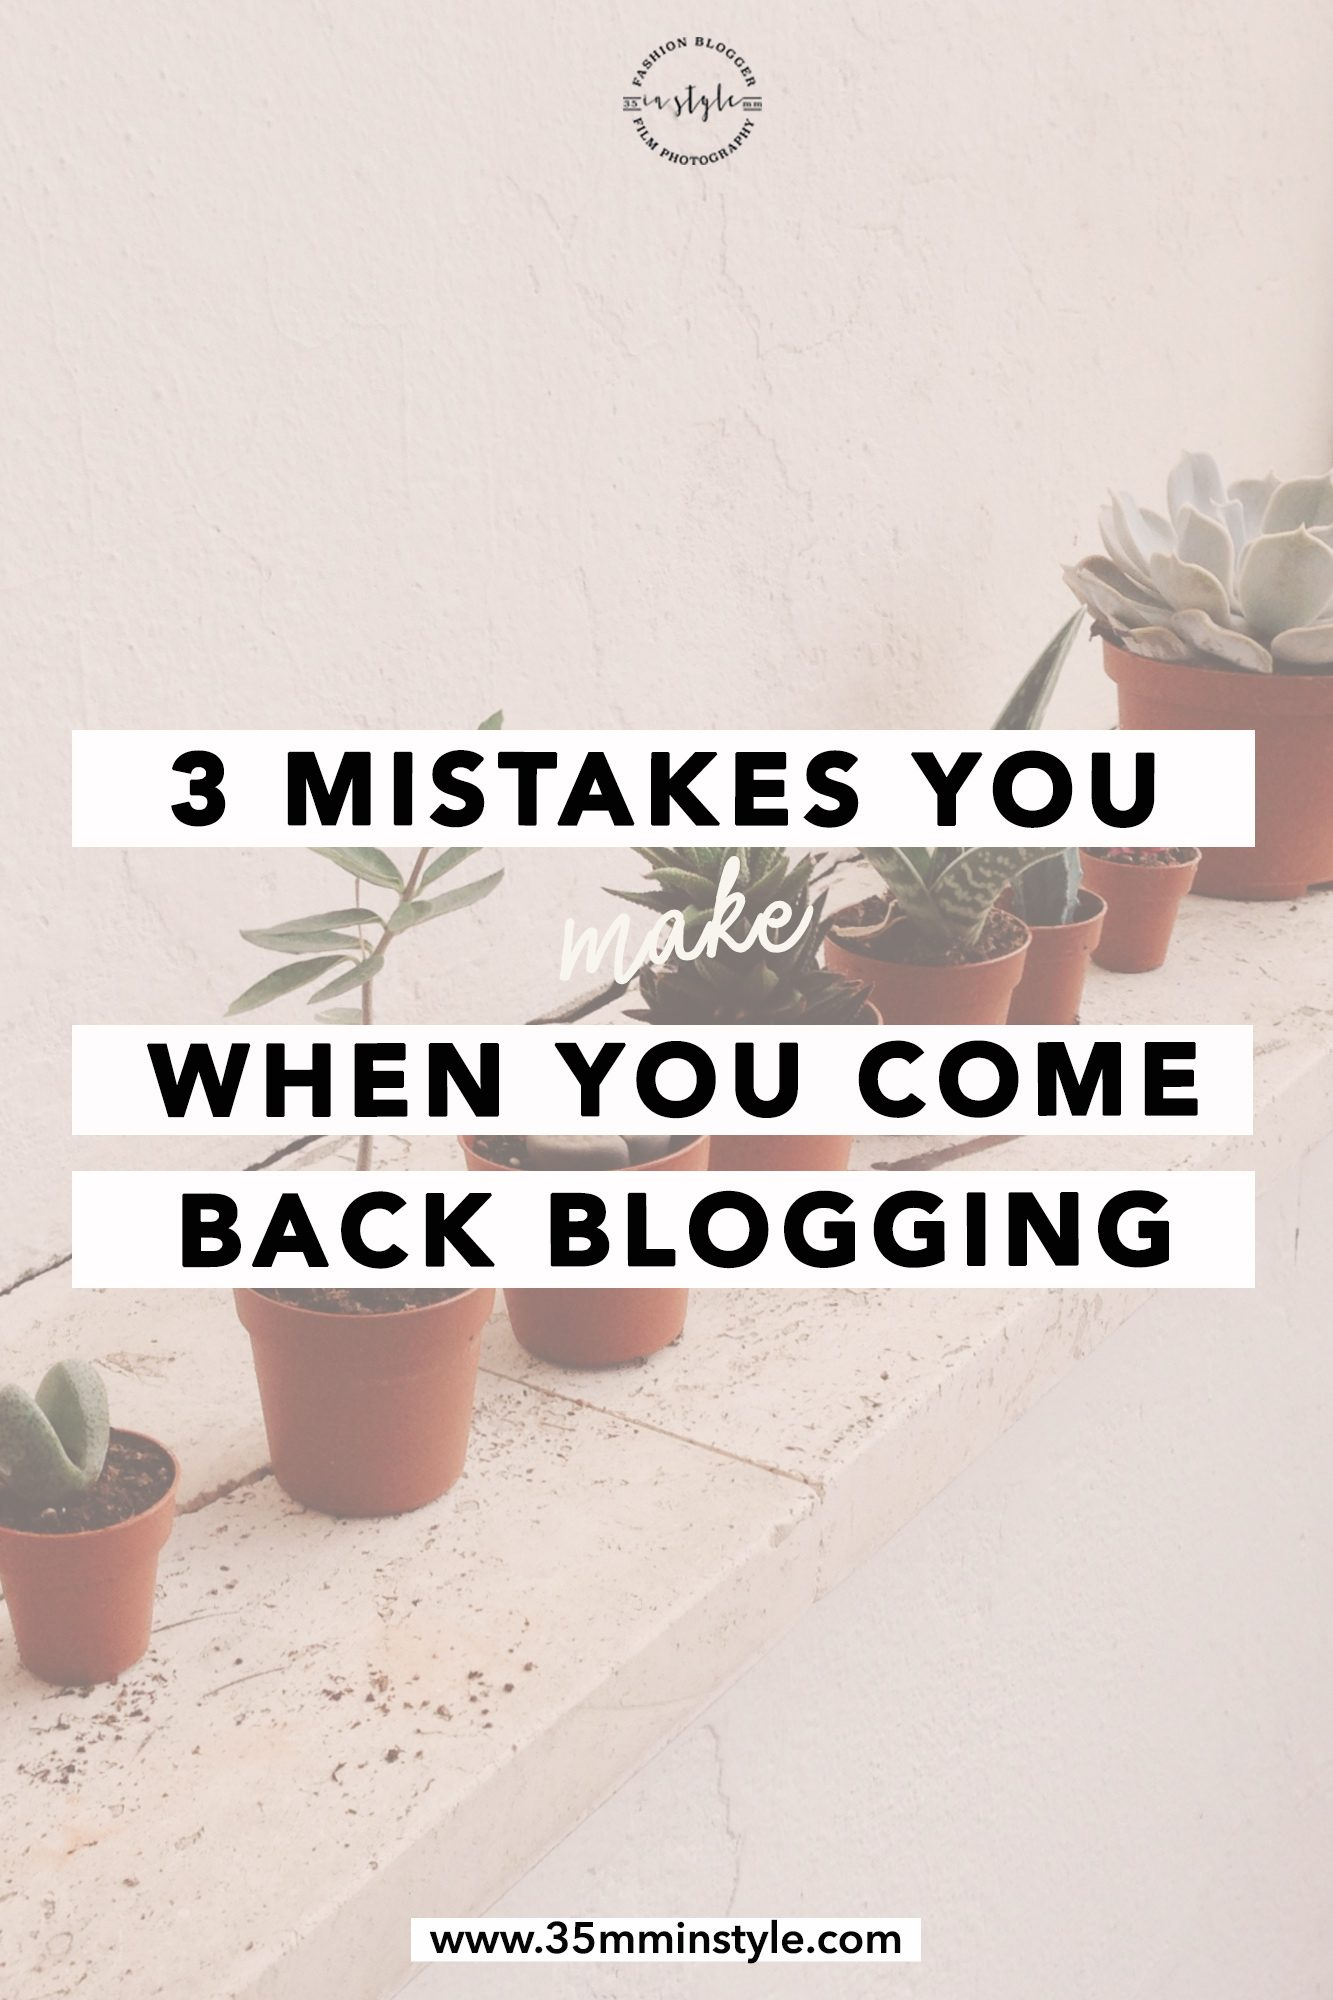 3 mistakes to avoid when you come back blogging tips to avoid making blogging mistakes